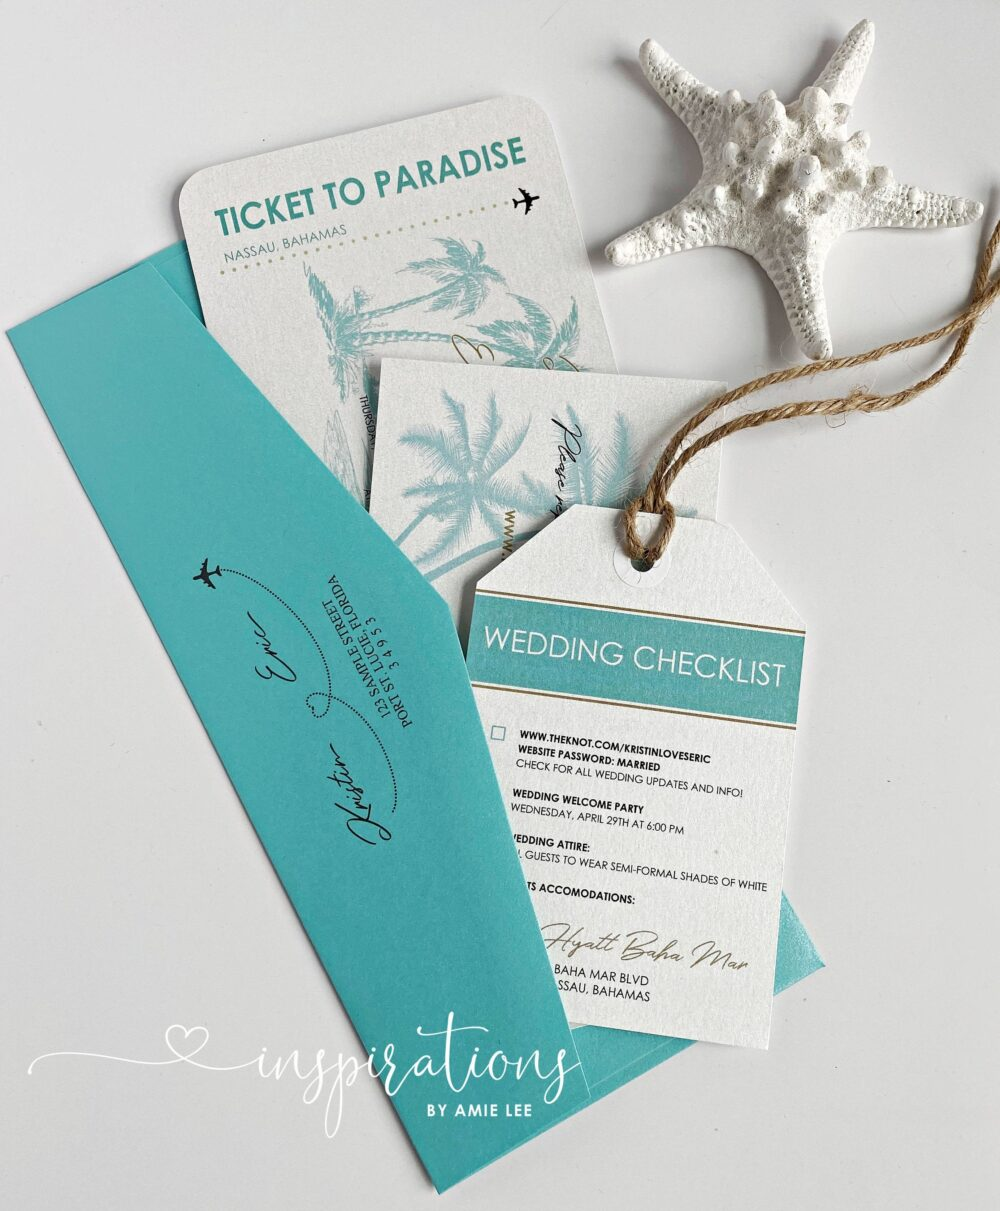 Boarding Pass Wedding Invitations, Destination Wedding, Save The Date, Bahamas, Airplane Ticket, Travel Theme, Beach